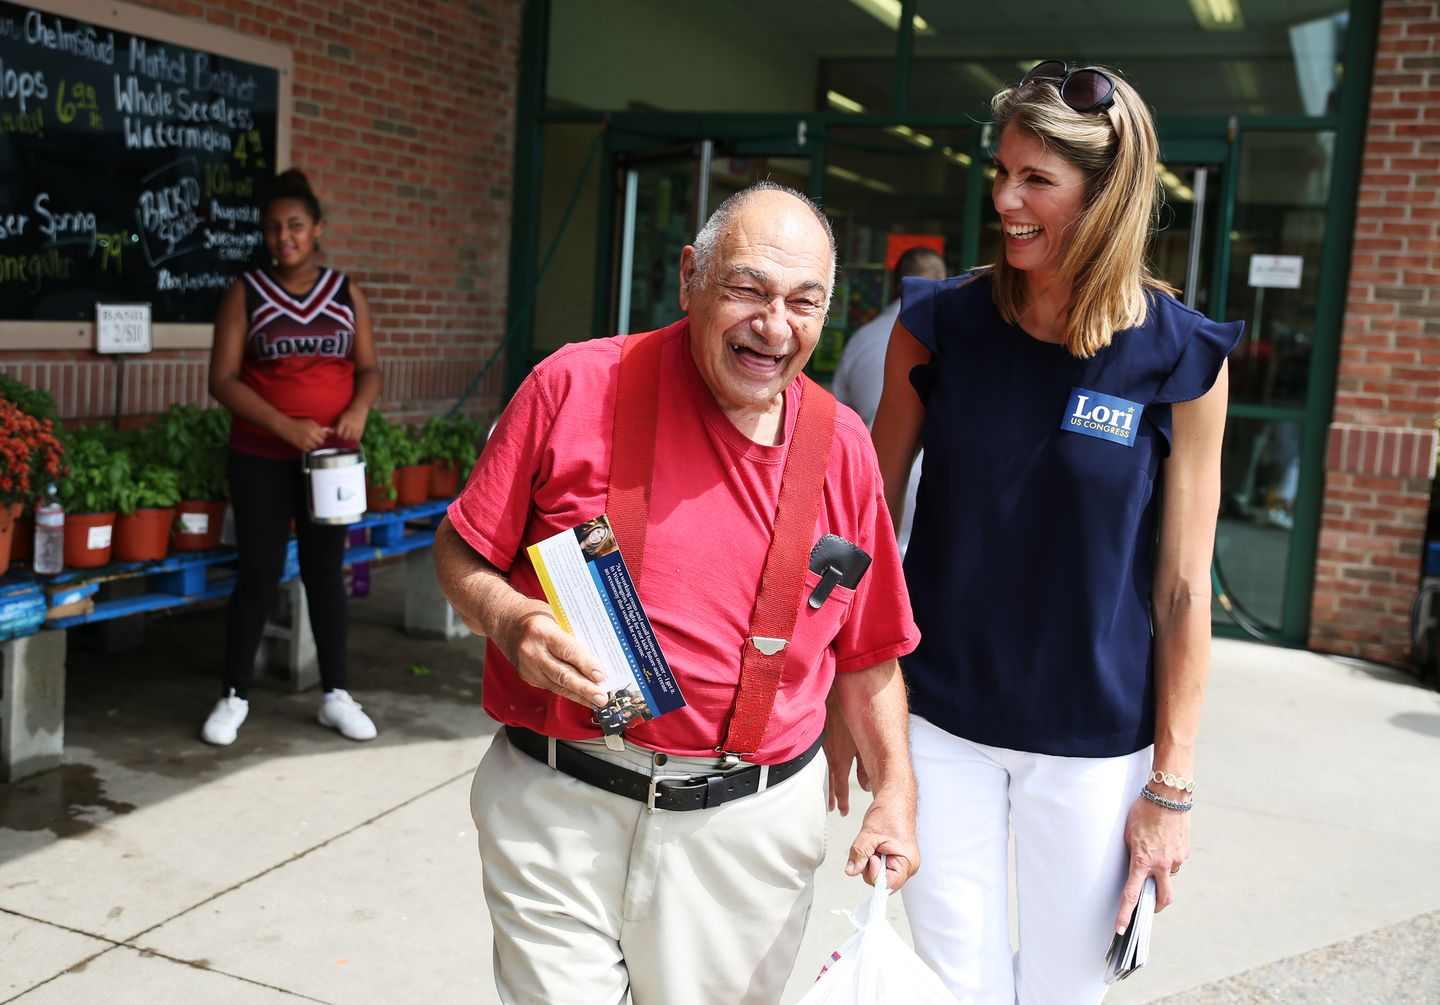 John Stagnon laughed with candidate Lori Trahan while she greeted voters outside of the Chelmsford Market Basket.